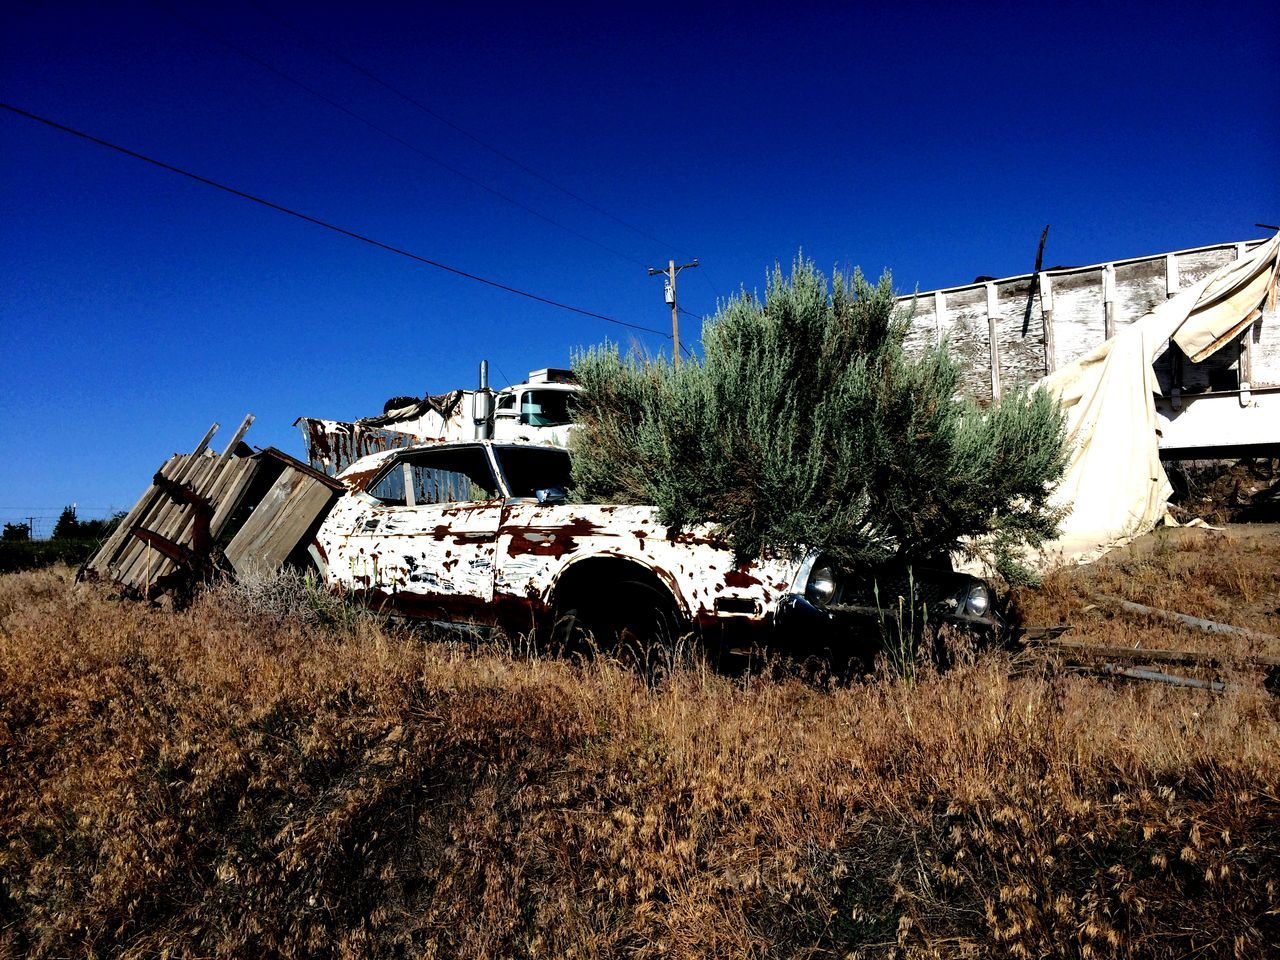 Abandoned Abandoned Vehicle Broken Dreams Bushstang Car Clear Sky Growth Mustang Nature Outdoors Pickers Rural Scene Sunny Vehicle Vintage